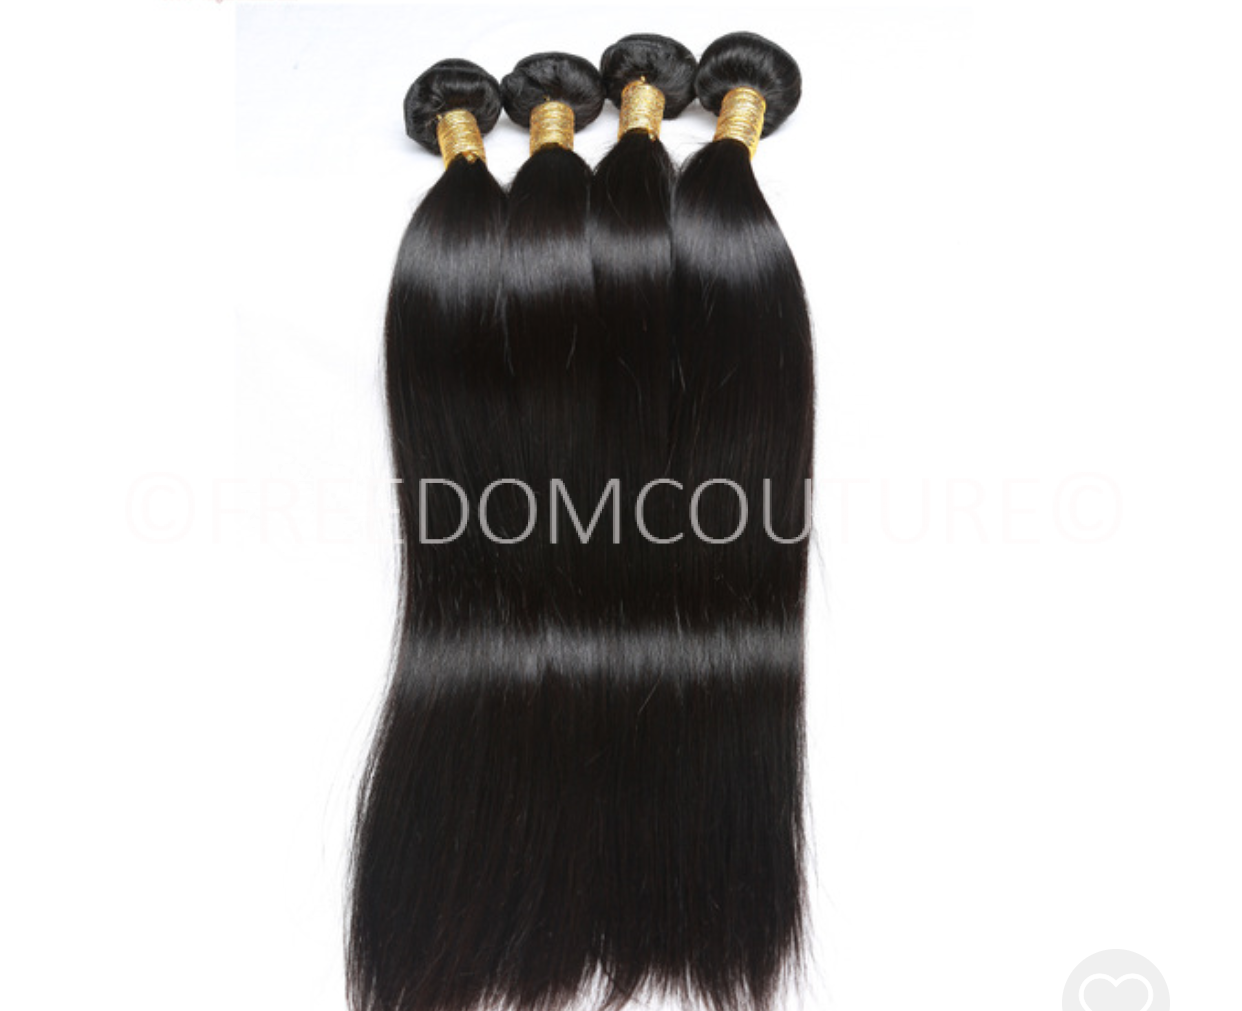 Natural Straight Hair Extensions Human Hair Wigs Australia By